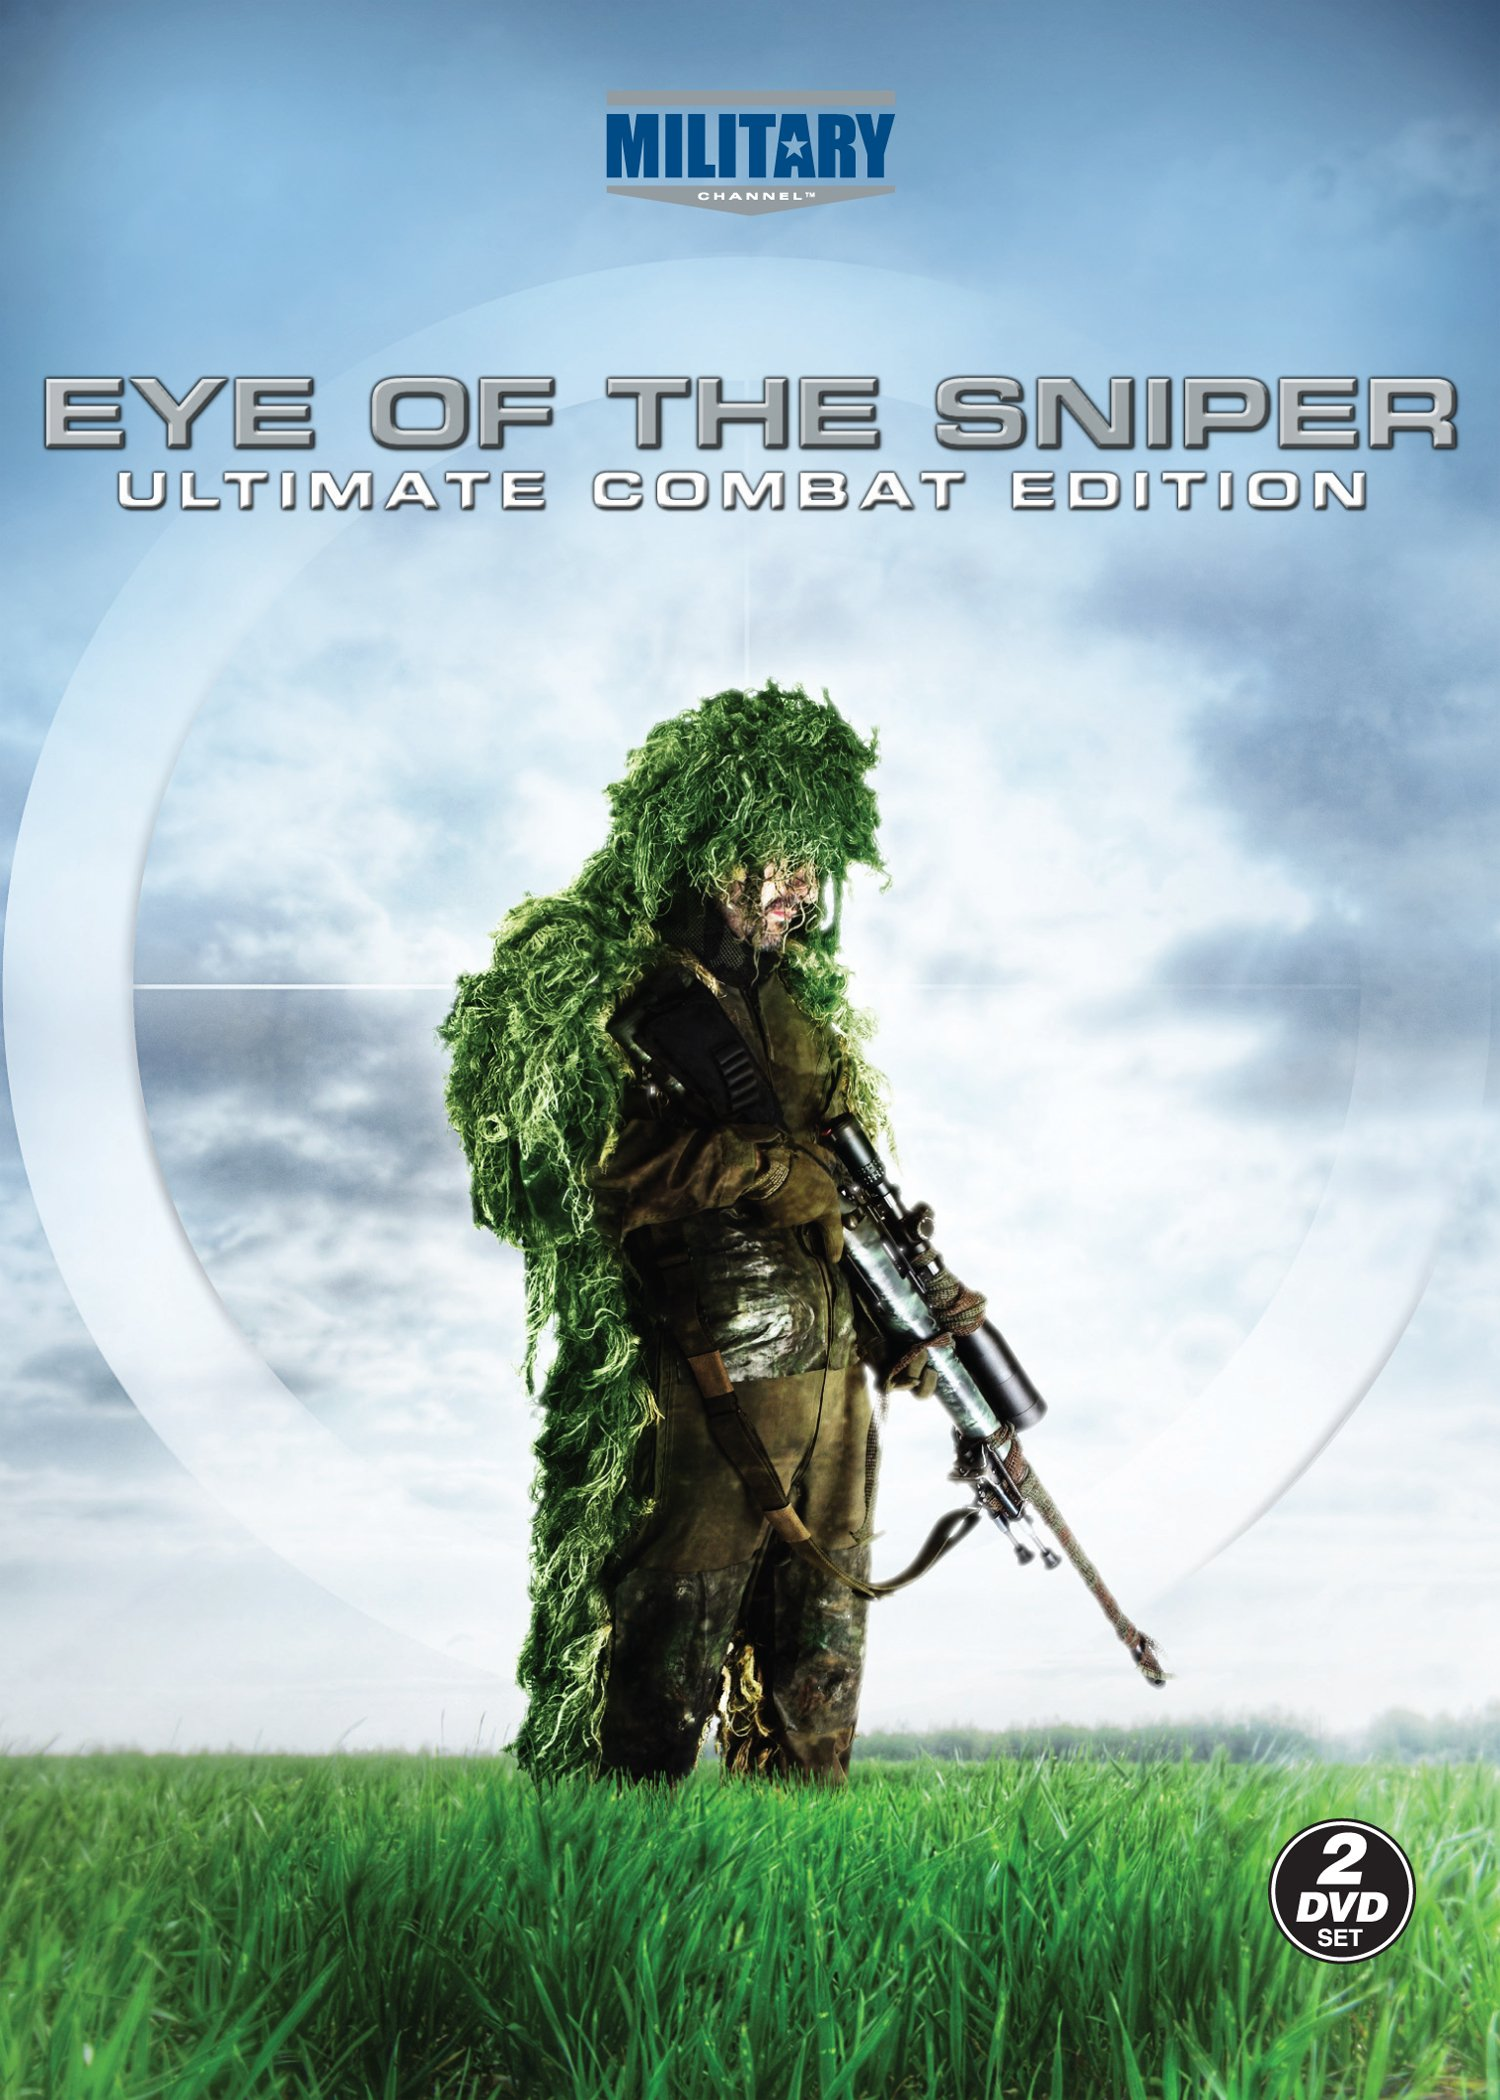 Eye of the Sniper: Ultimate Combat Edition by Gaiam